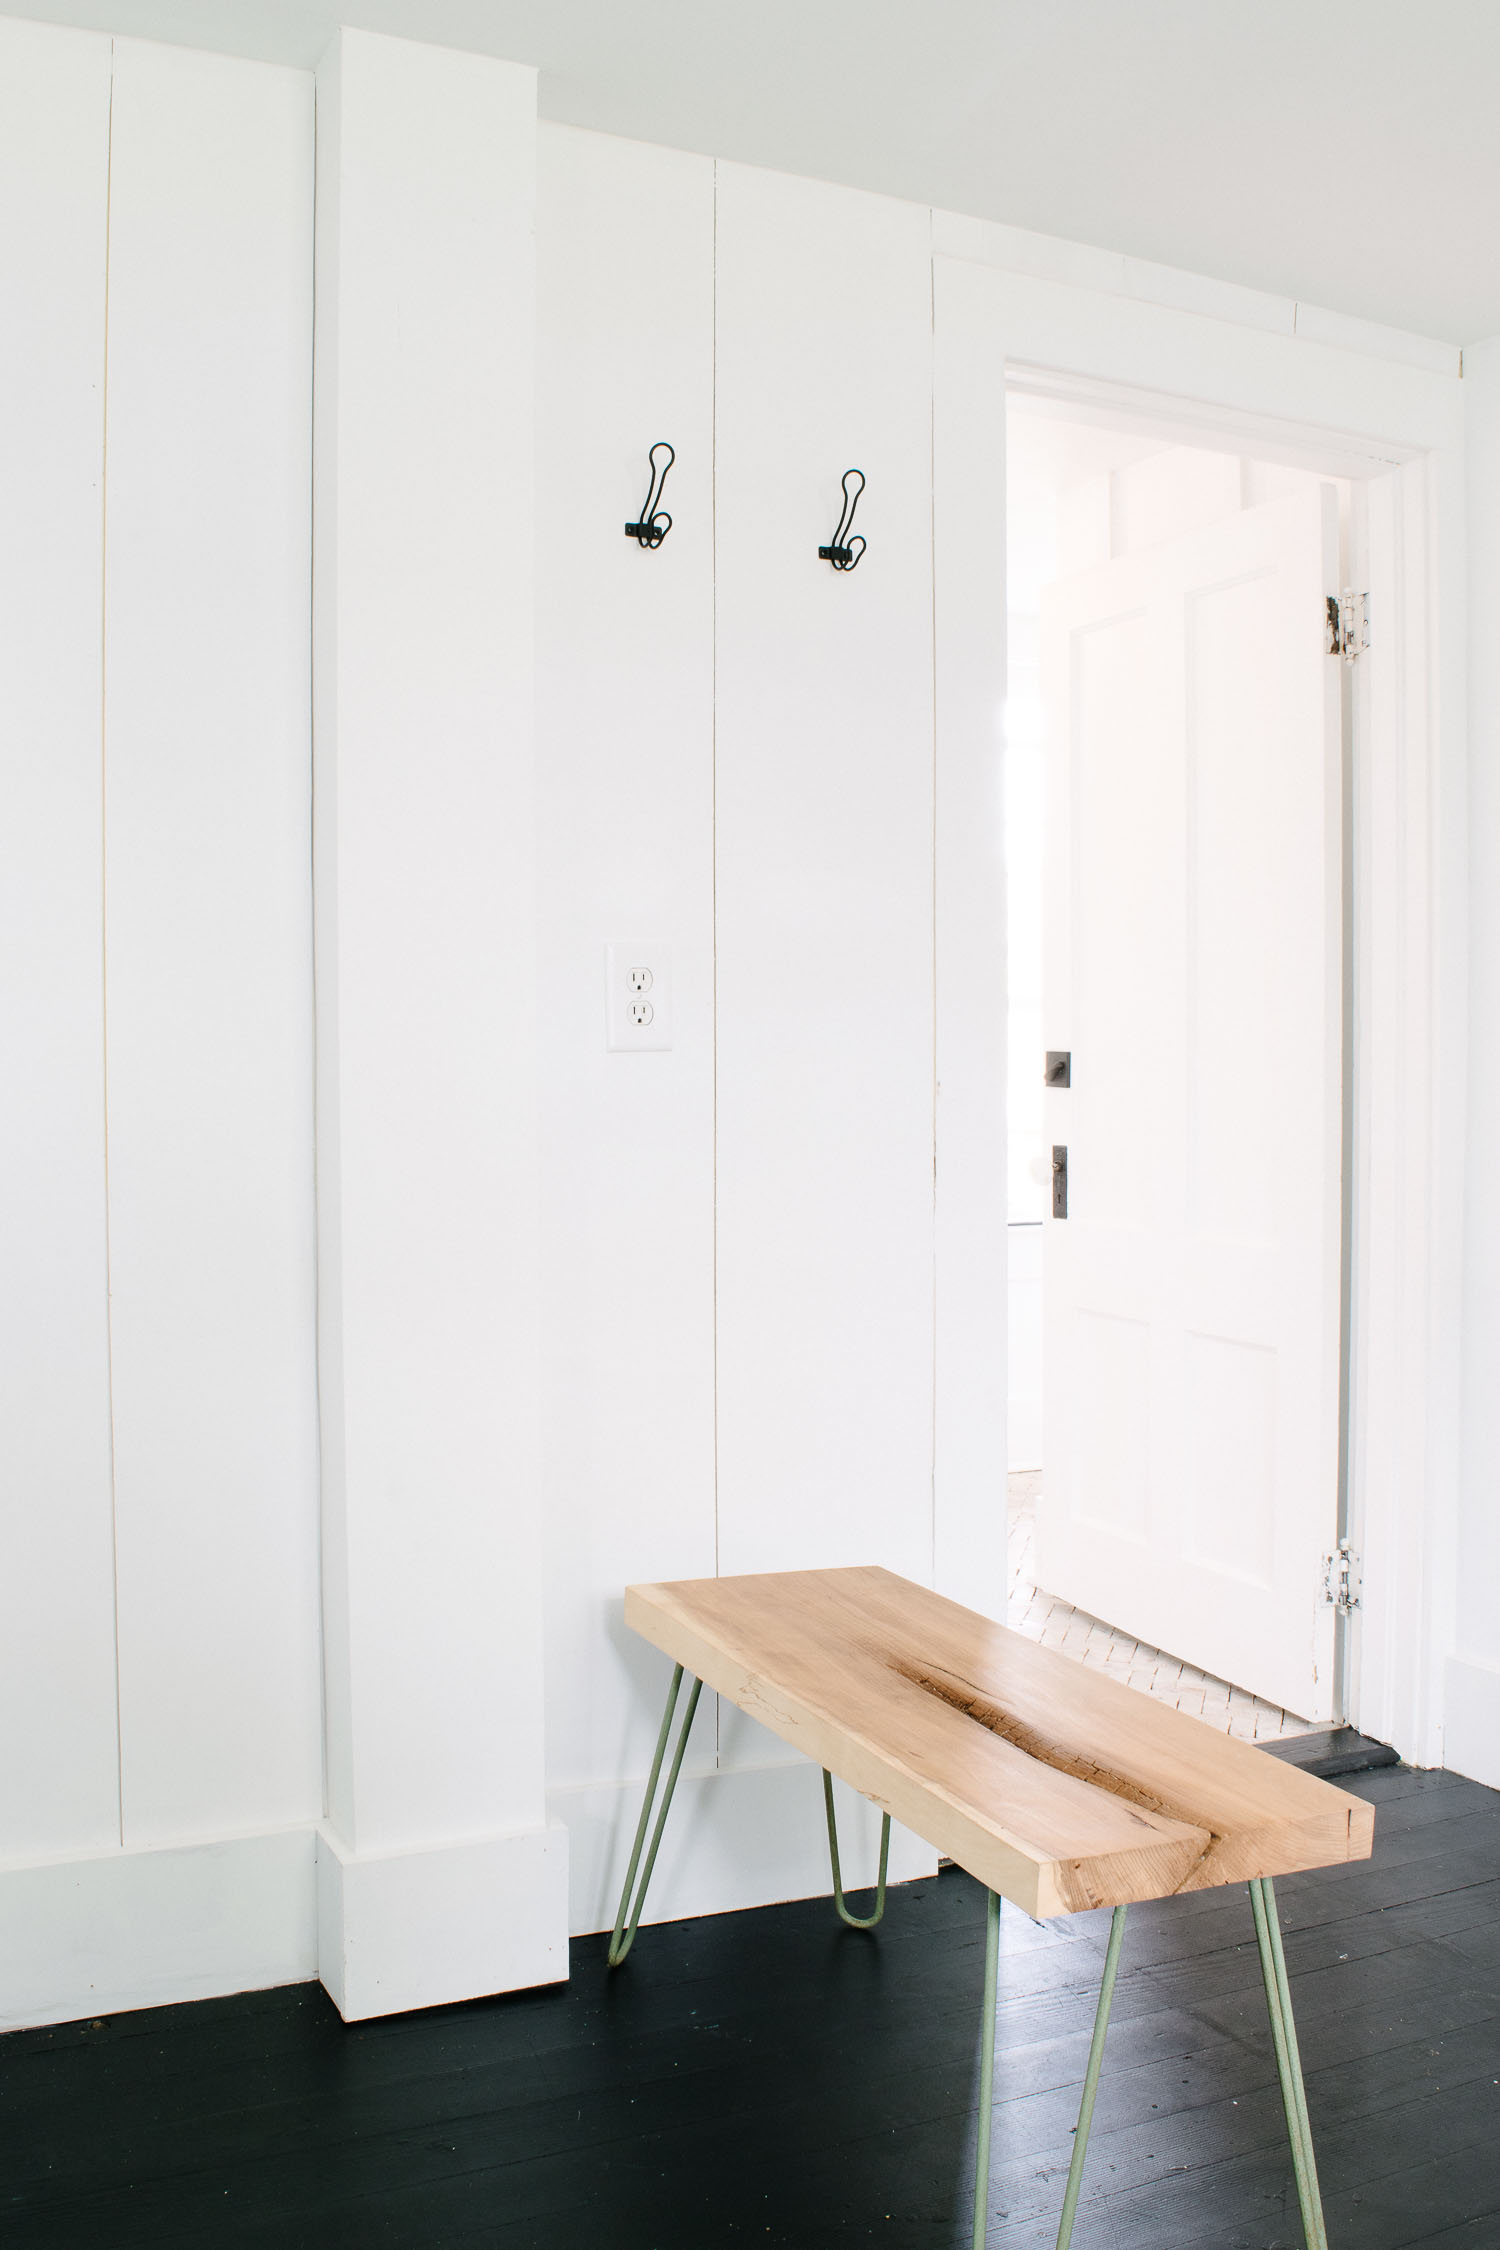 Small entryway for a short term rental or Airbnb  designed by DIY & Home Bloggers This Giant Life.